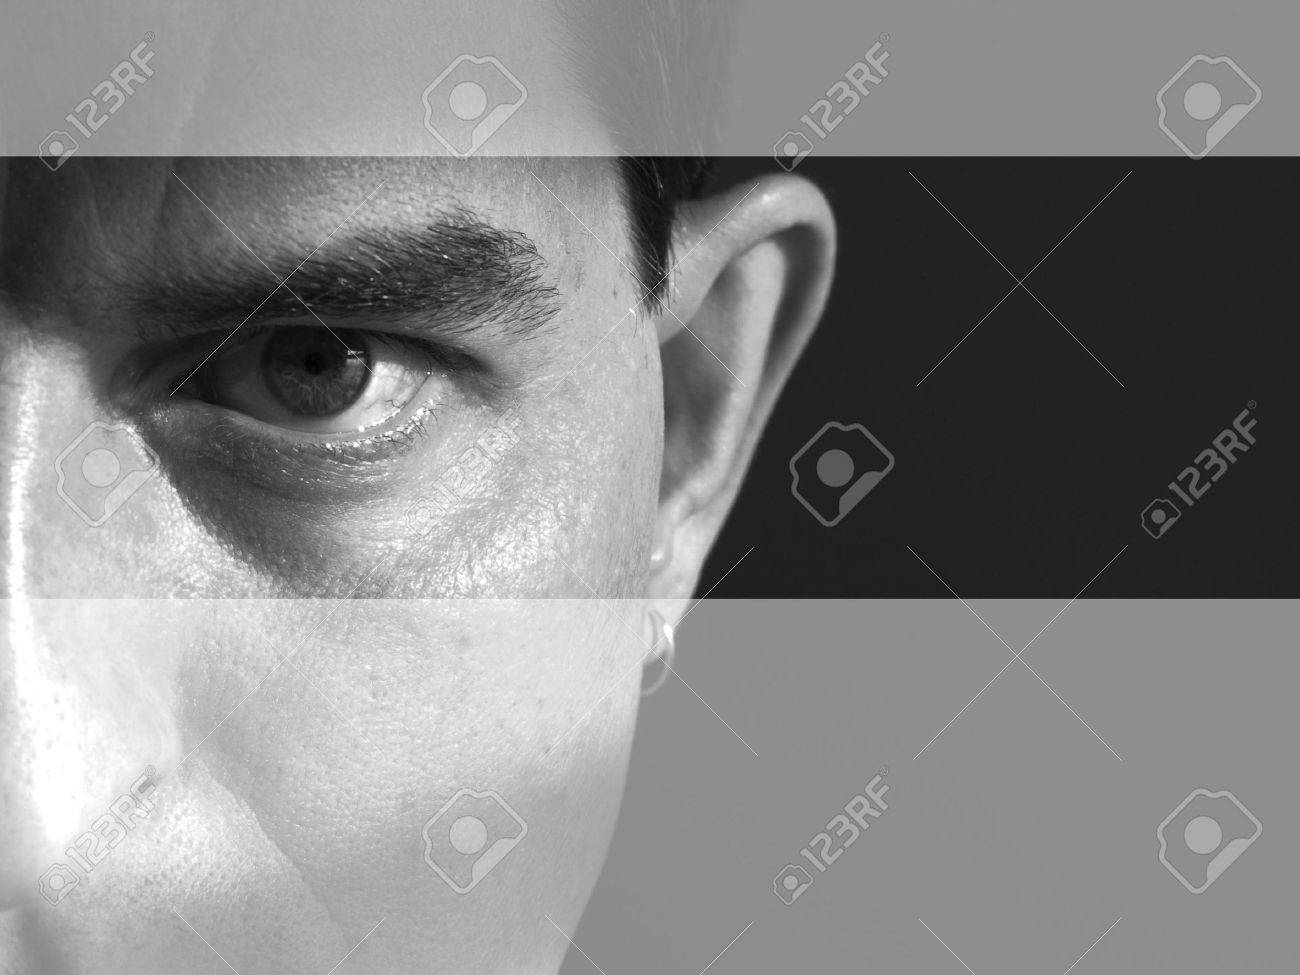 Black and white closeup of the left side of a man's face. Man is looking serious and intense and maybe angry. There are lighter bands going across the top and bottom of the image, drawing the viewer's eye to the model's eye.Taken in my bathroom with sunli Stock Photo - 417479